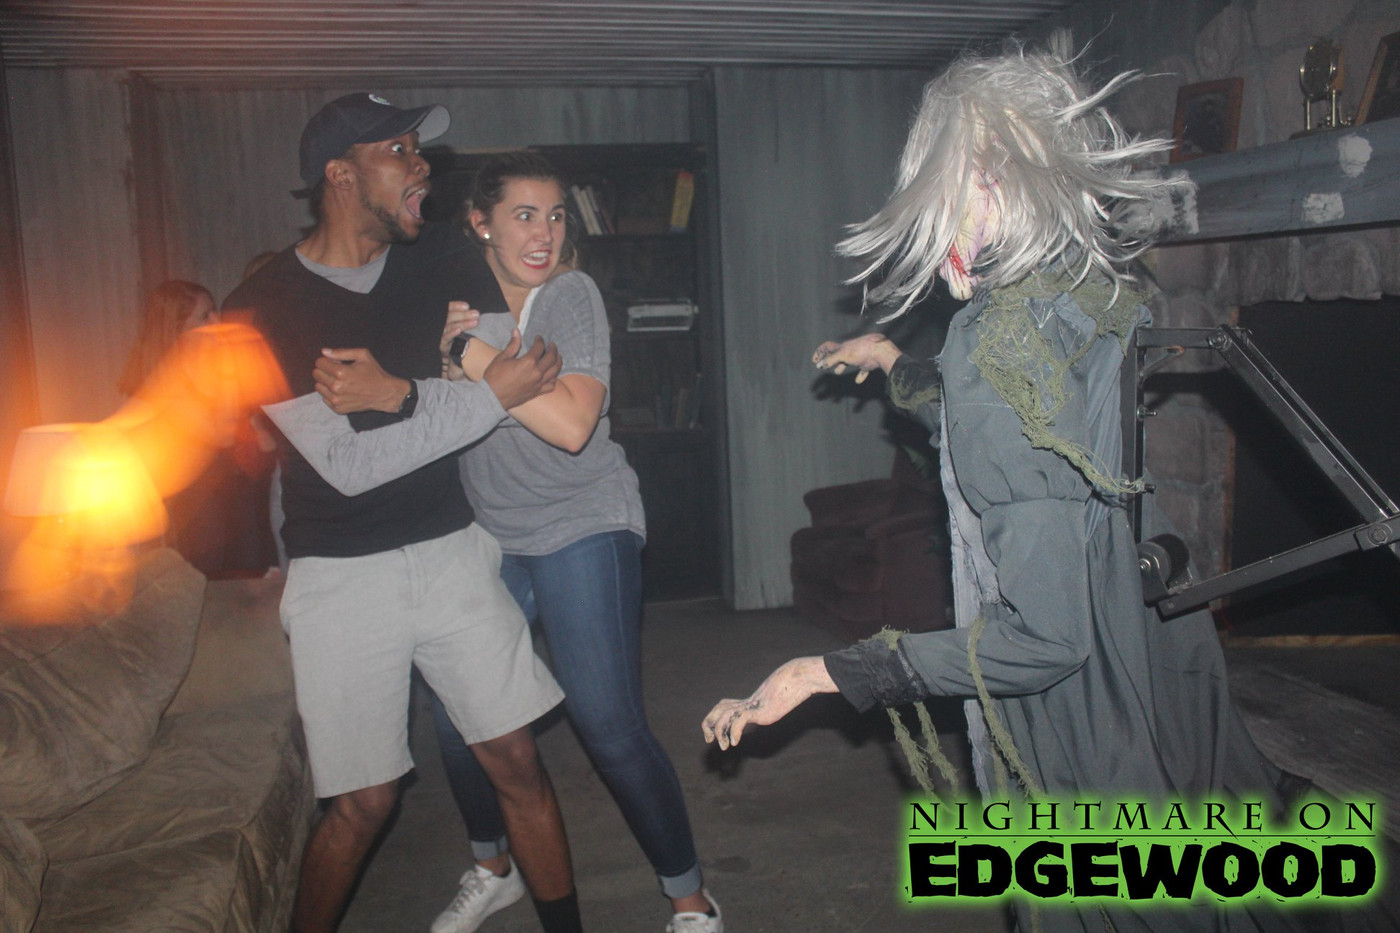 Nightmare on Edgewood Haunted House Reaction Photos